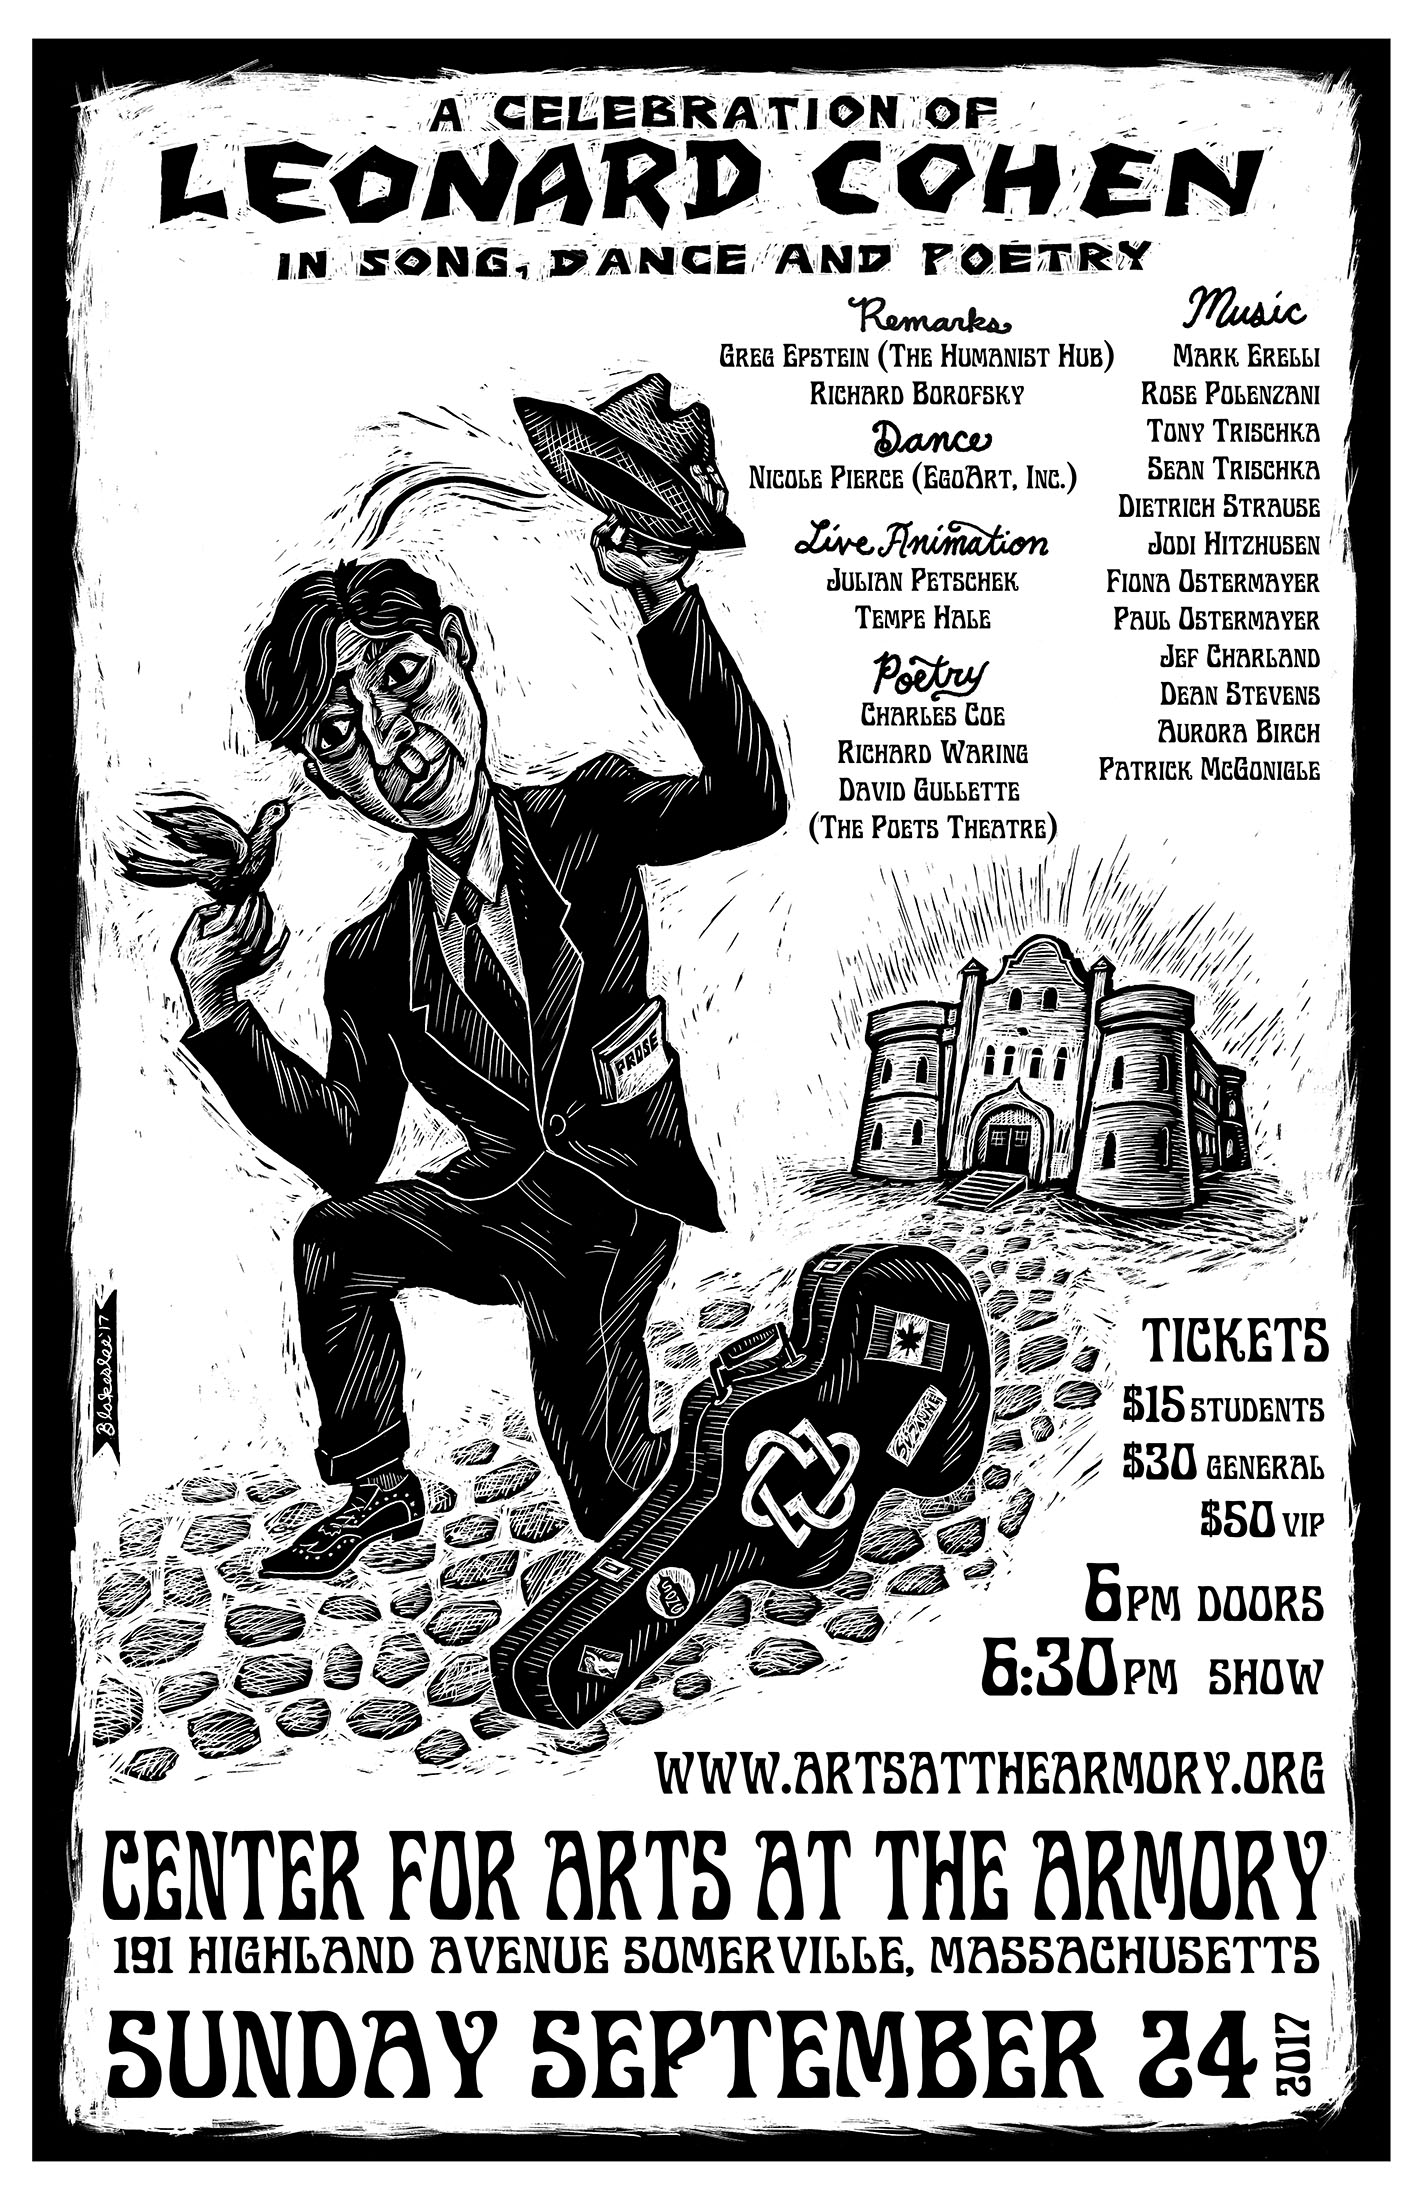 A Celebration of Leonard Cohen in Music, Dance, and Poetry - Cornerscape produced a celebration of Leonard Cohen's work,performed on September 24, 2017 to a sold-out crowd of 300 at the Somerville Armory. We oversaw: event design, production, marketing, permitting, and all logistics.Beautiful poster by Dan Blakeslee. Slightly blurry iPhone photos below by me.